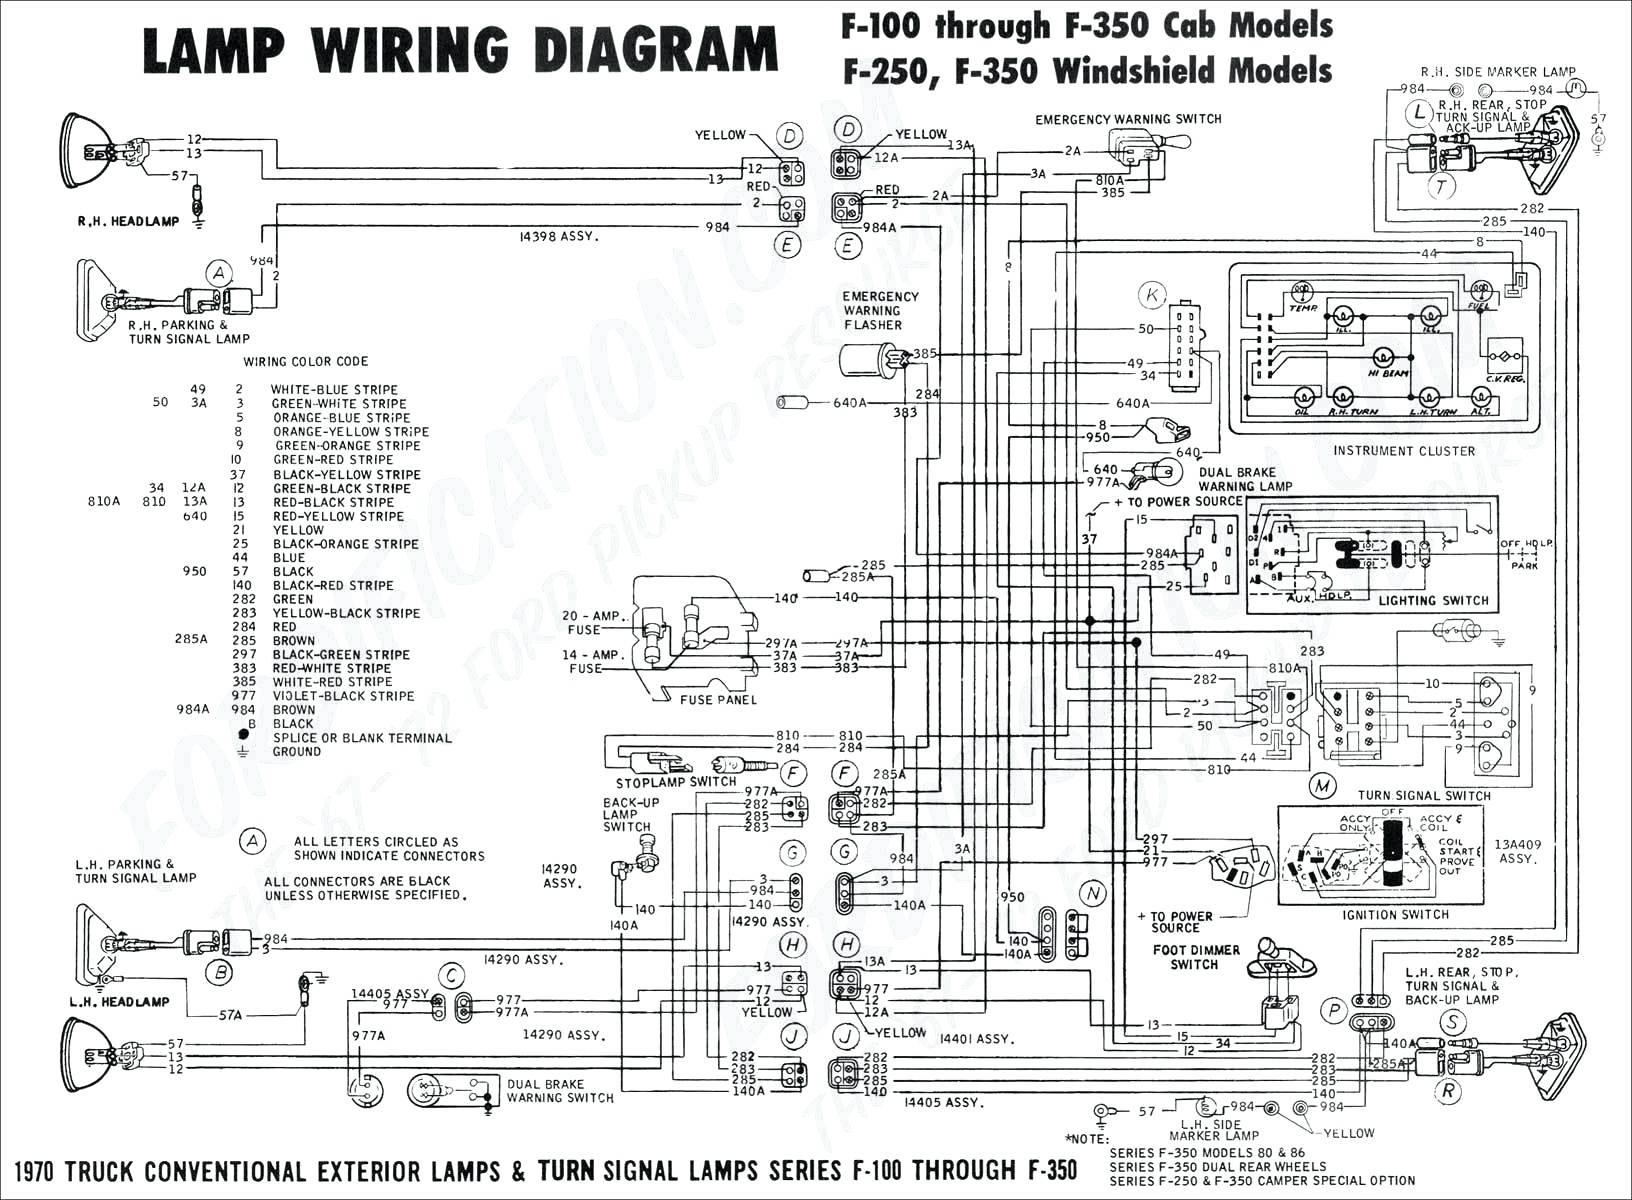 2002 ford Explorer Xlt Engine Diagram 2002 ford F 350 Wiring Diagram Wiring  Data Of 2002